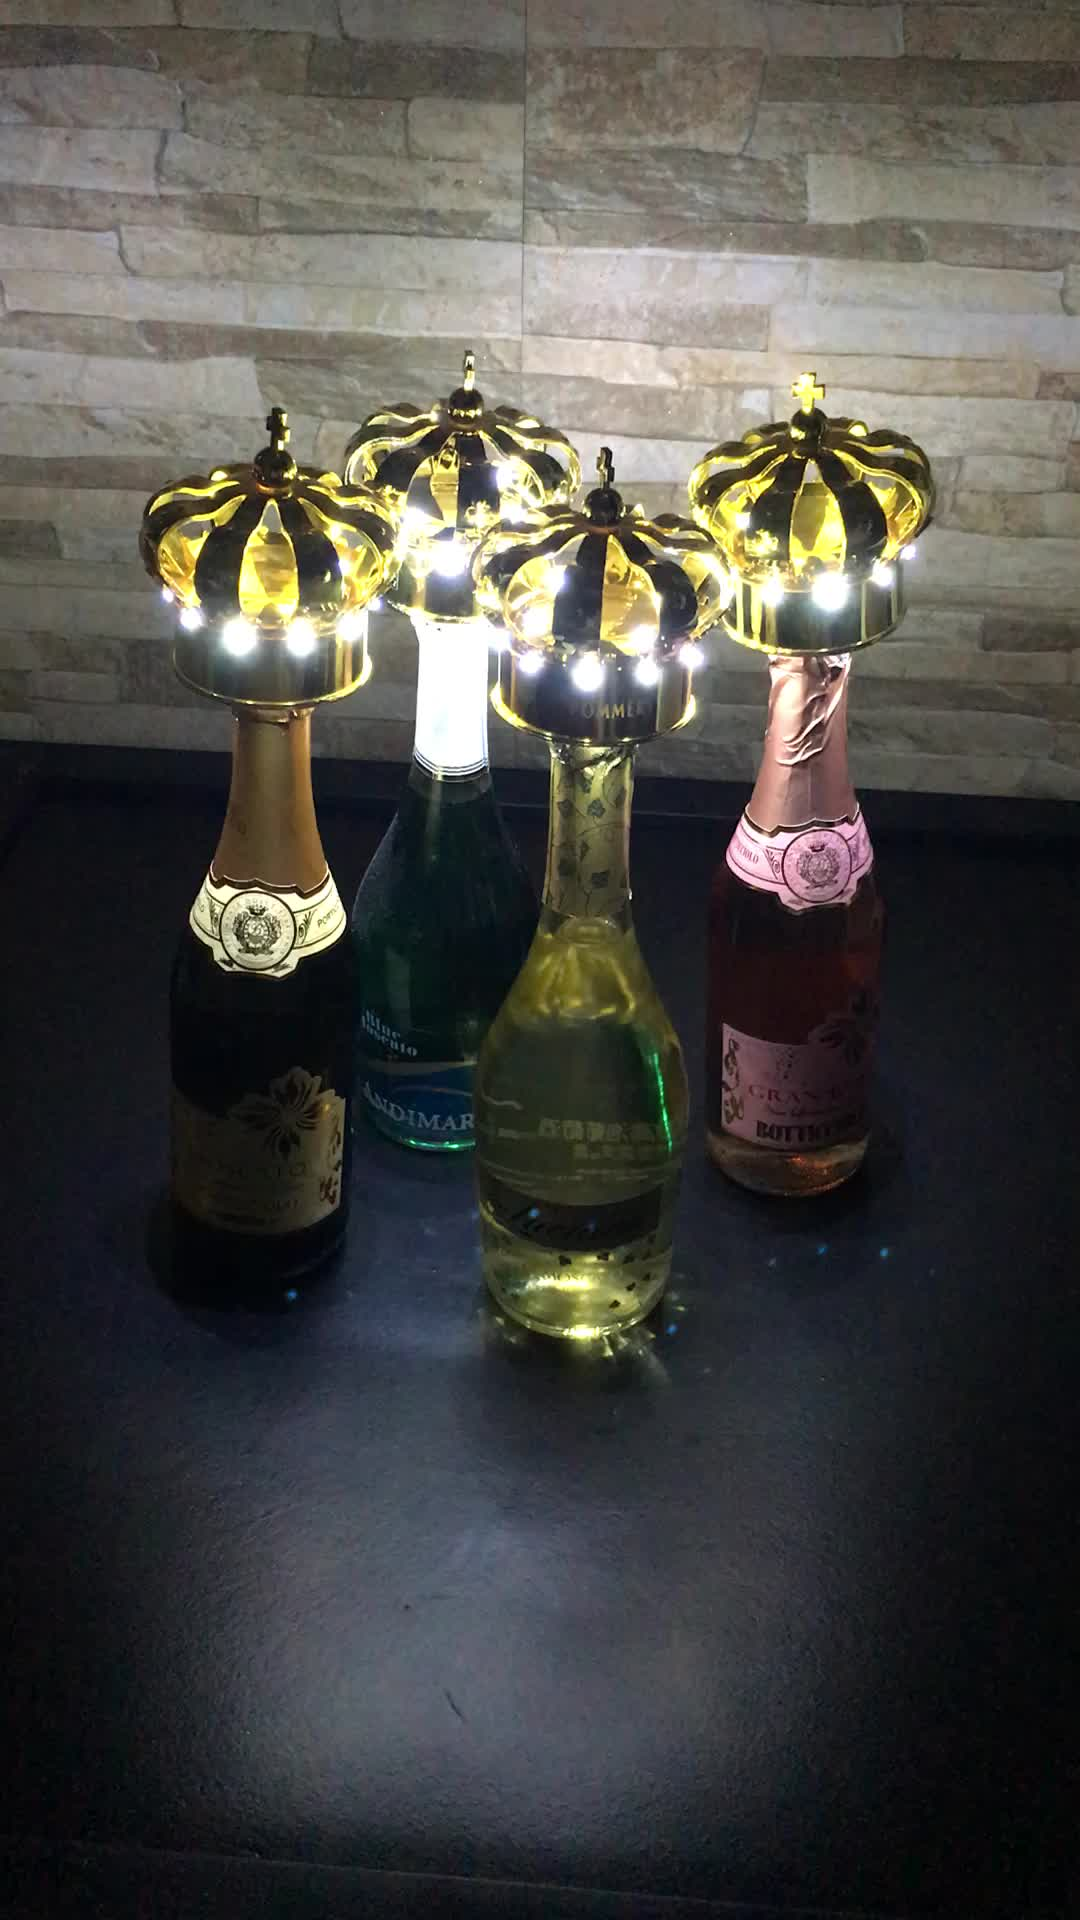 Elegant Nightclub VIP led lighting crown champagne bottle caps